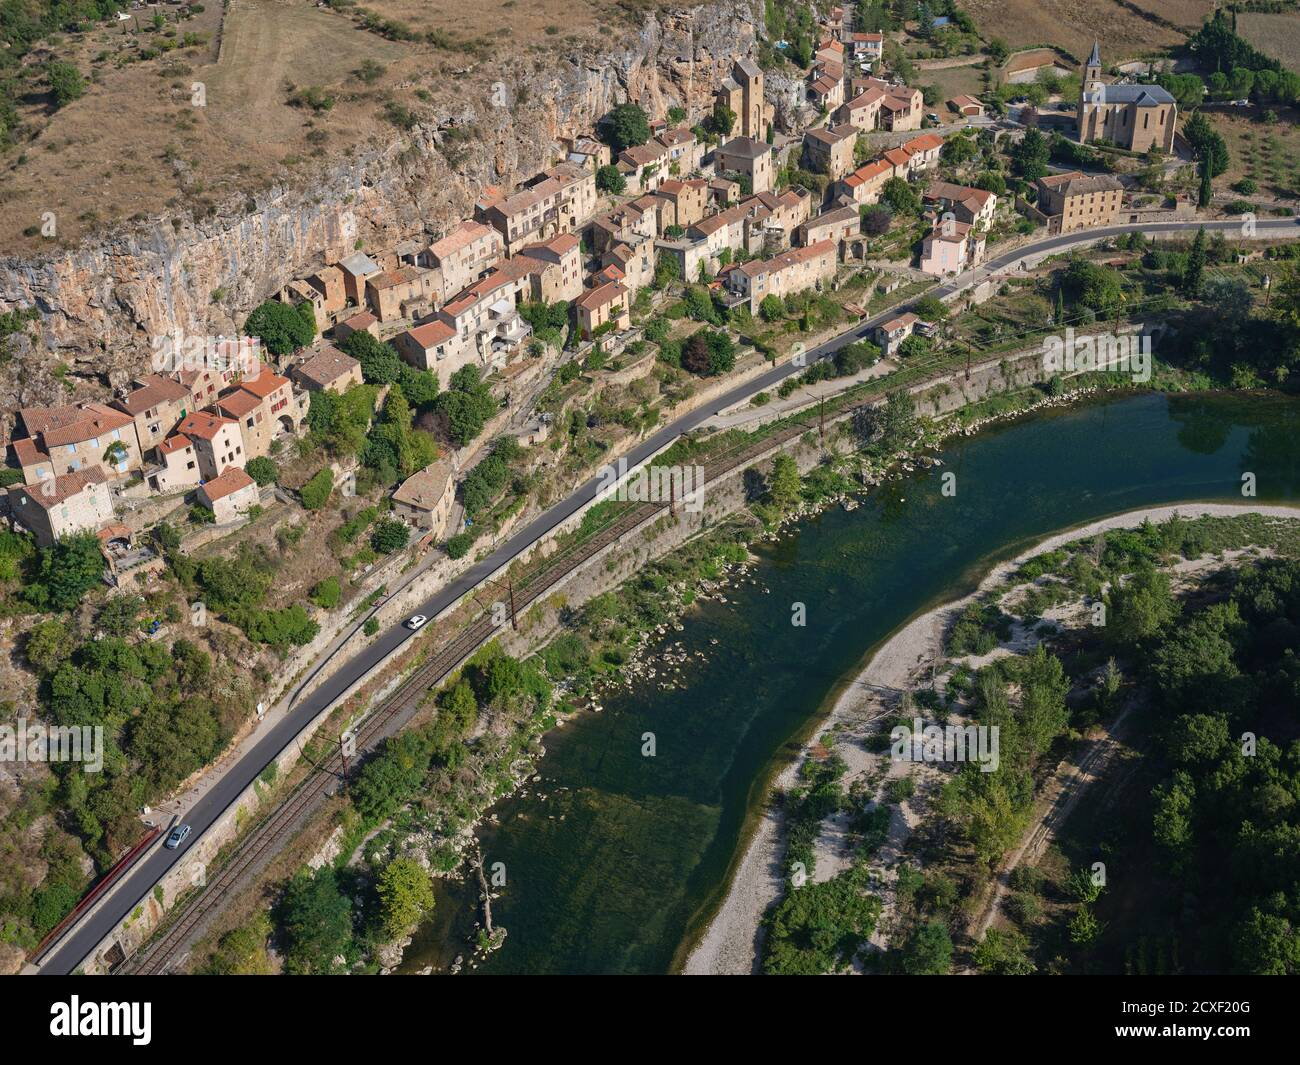 AERIAL VIEW. Picturesque village situated at the foot of a cliff and overlooking the Tarn River. Peyre, Comprégnac, Aveyron, Occitanie, France. Stock Photo